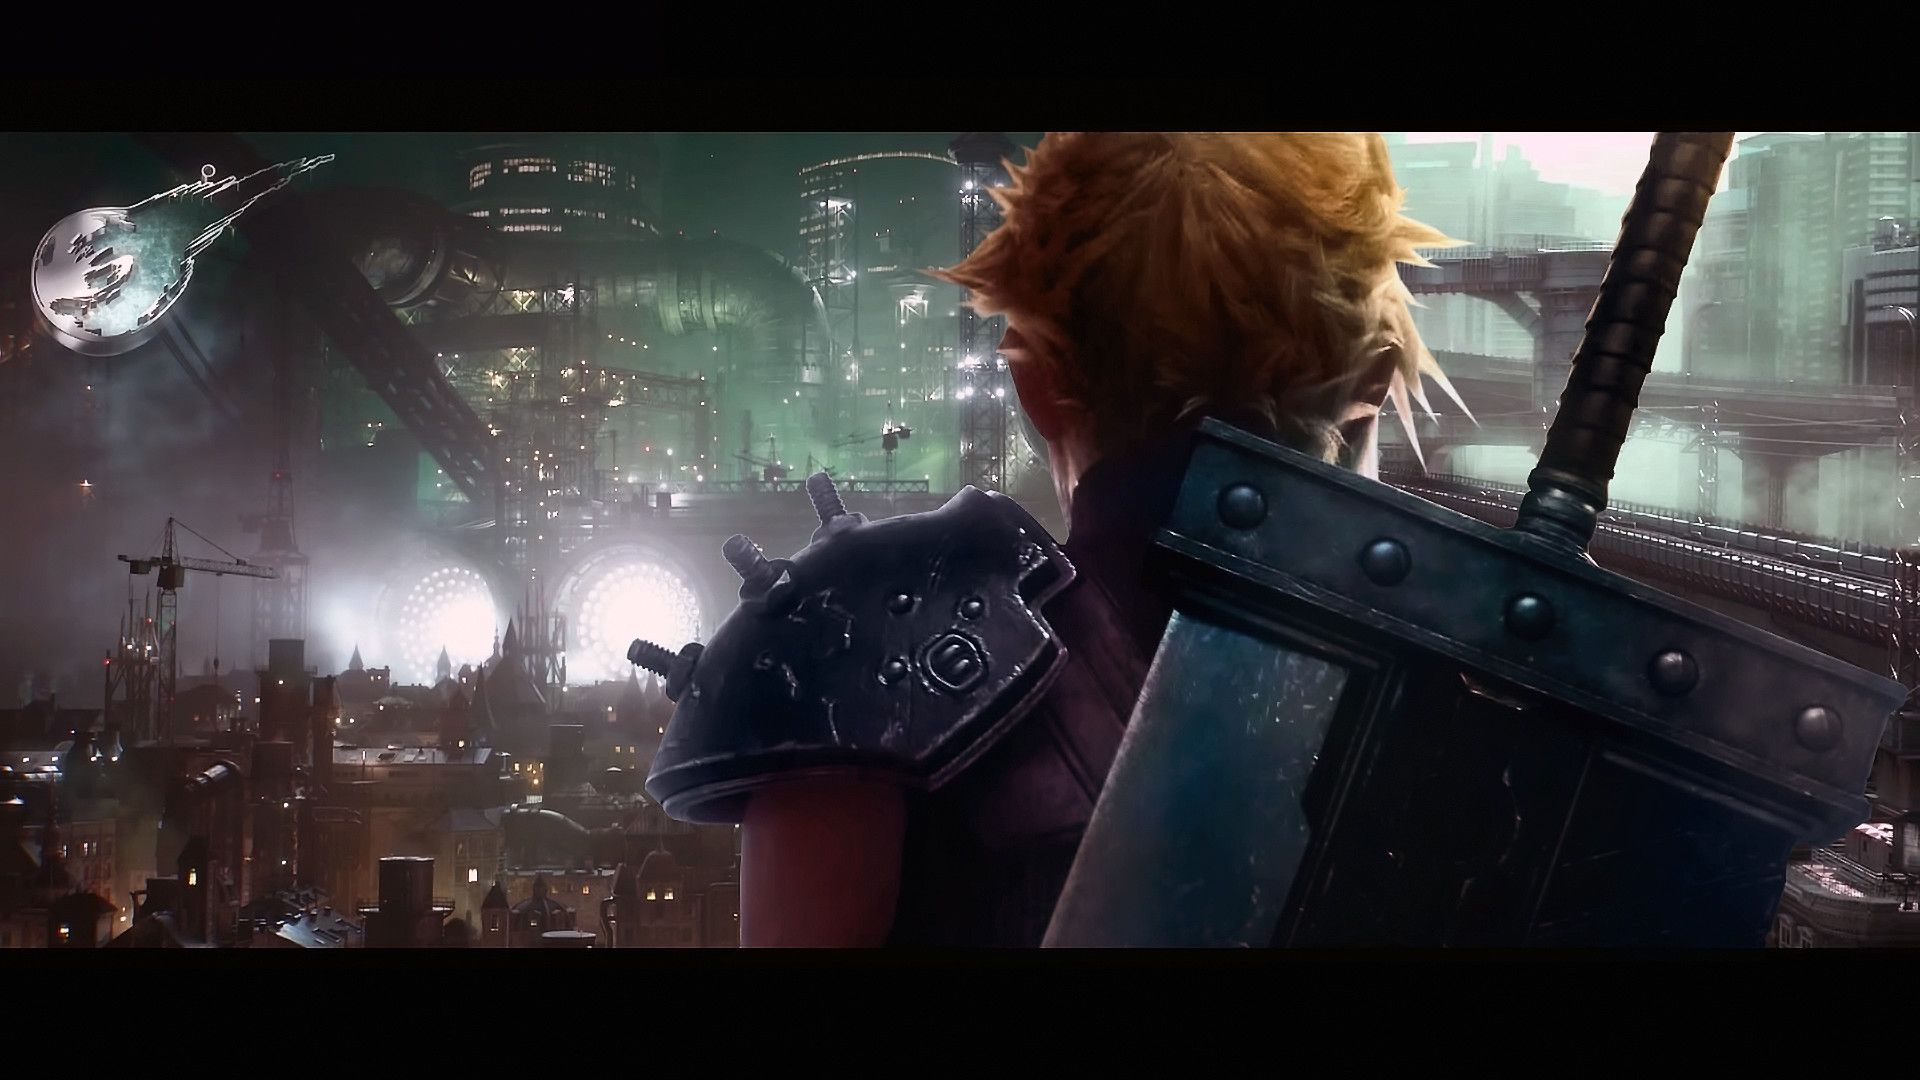 Final Fantasy 7 Remake Wallpapers In 2019 Final Fantasy